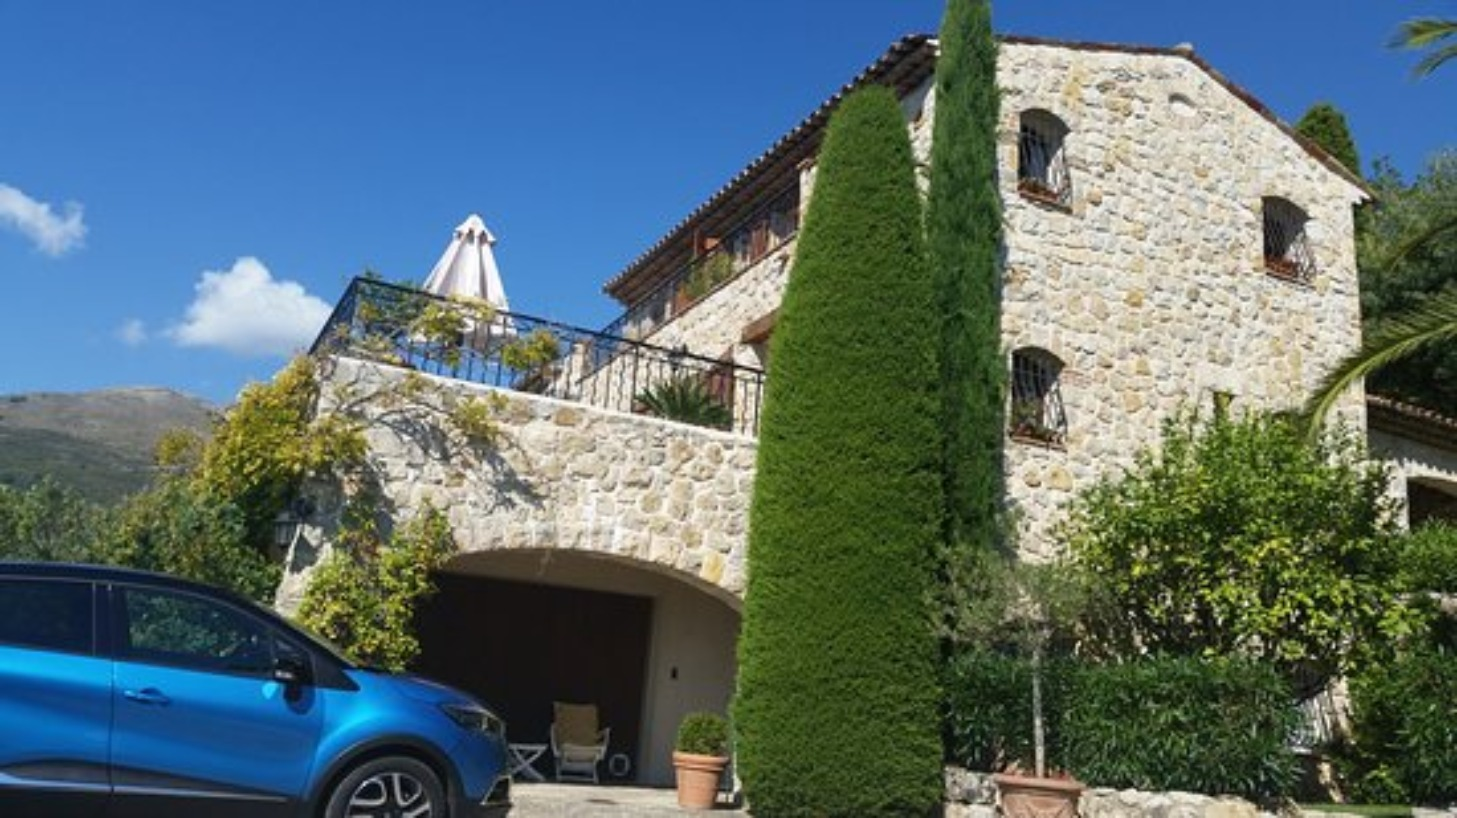 A car parked on the side of a building at La Bastide des Pins.